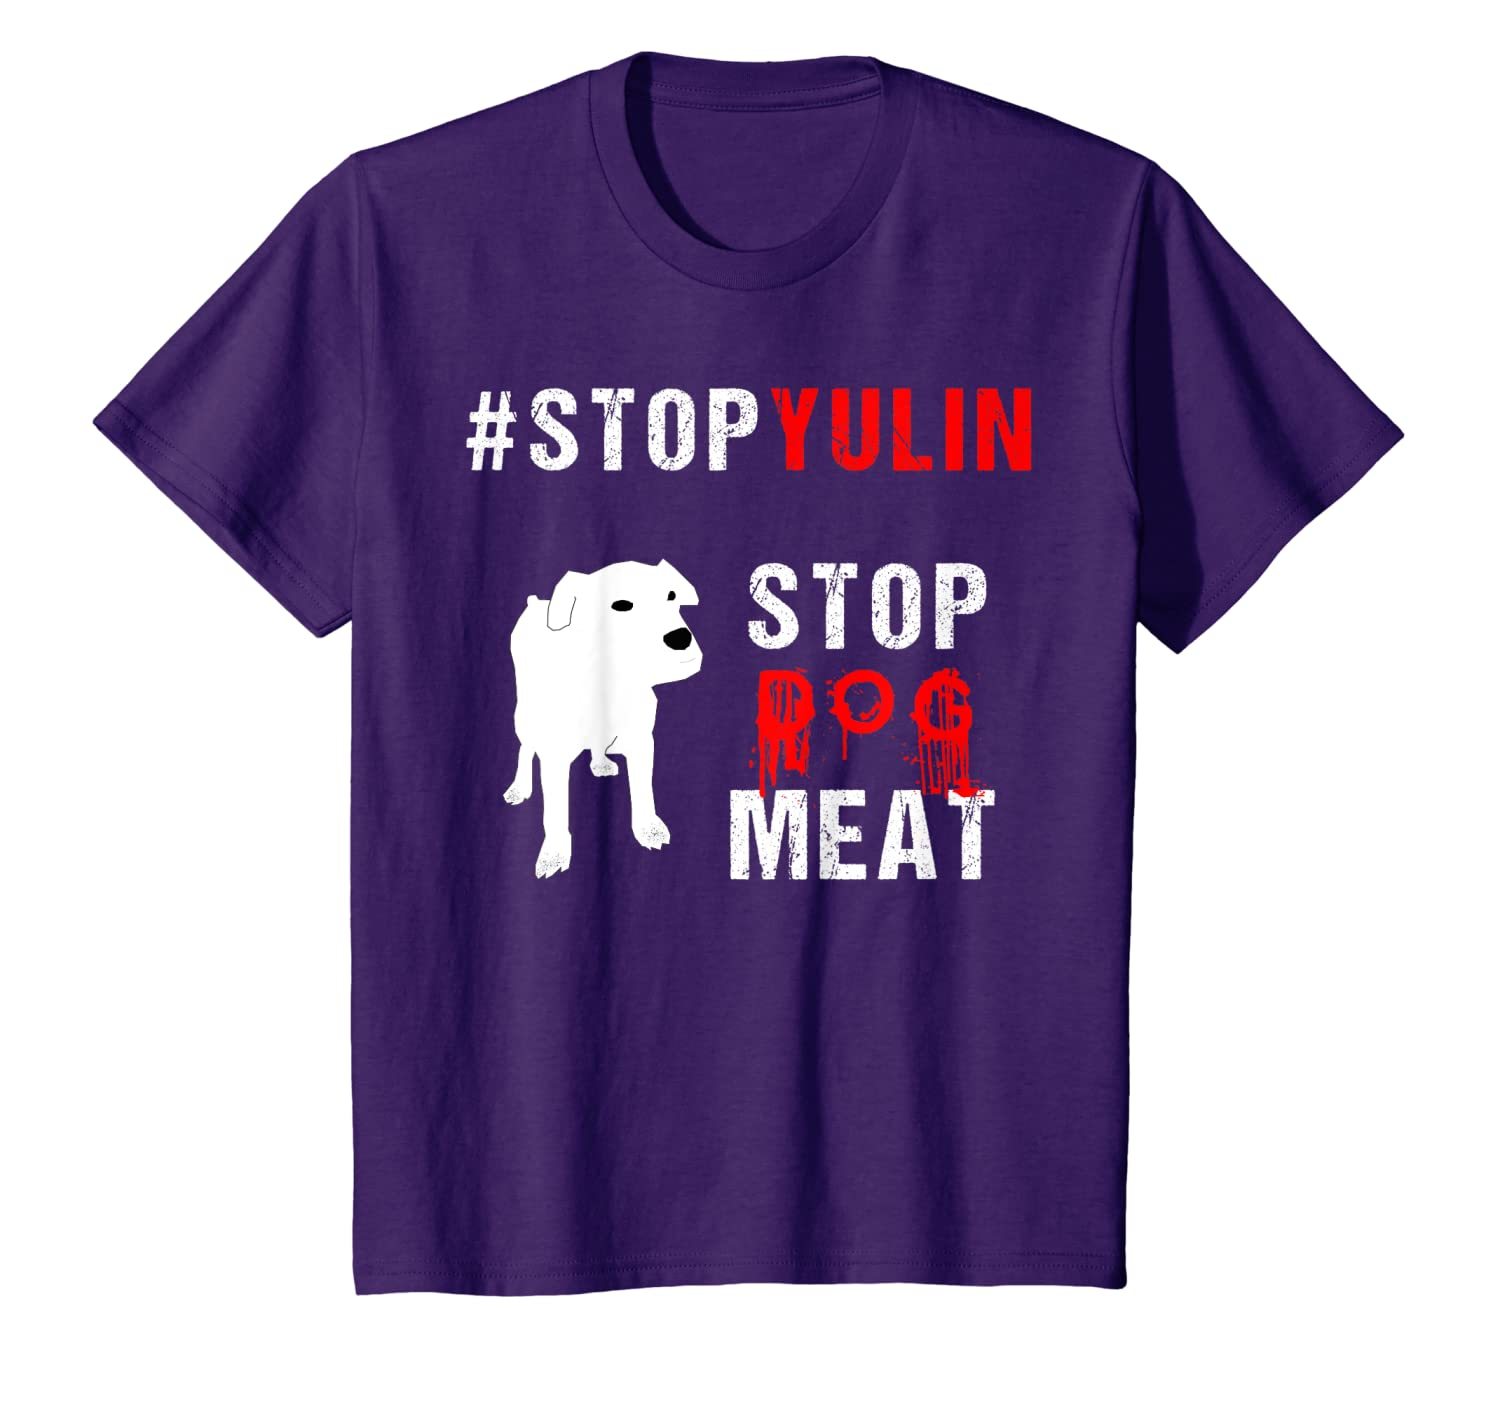 Animal Rights-stop Yulin Stop Dog Meat Festival T-shirt - Dogs Shirts